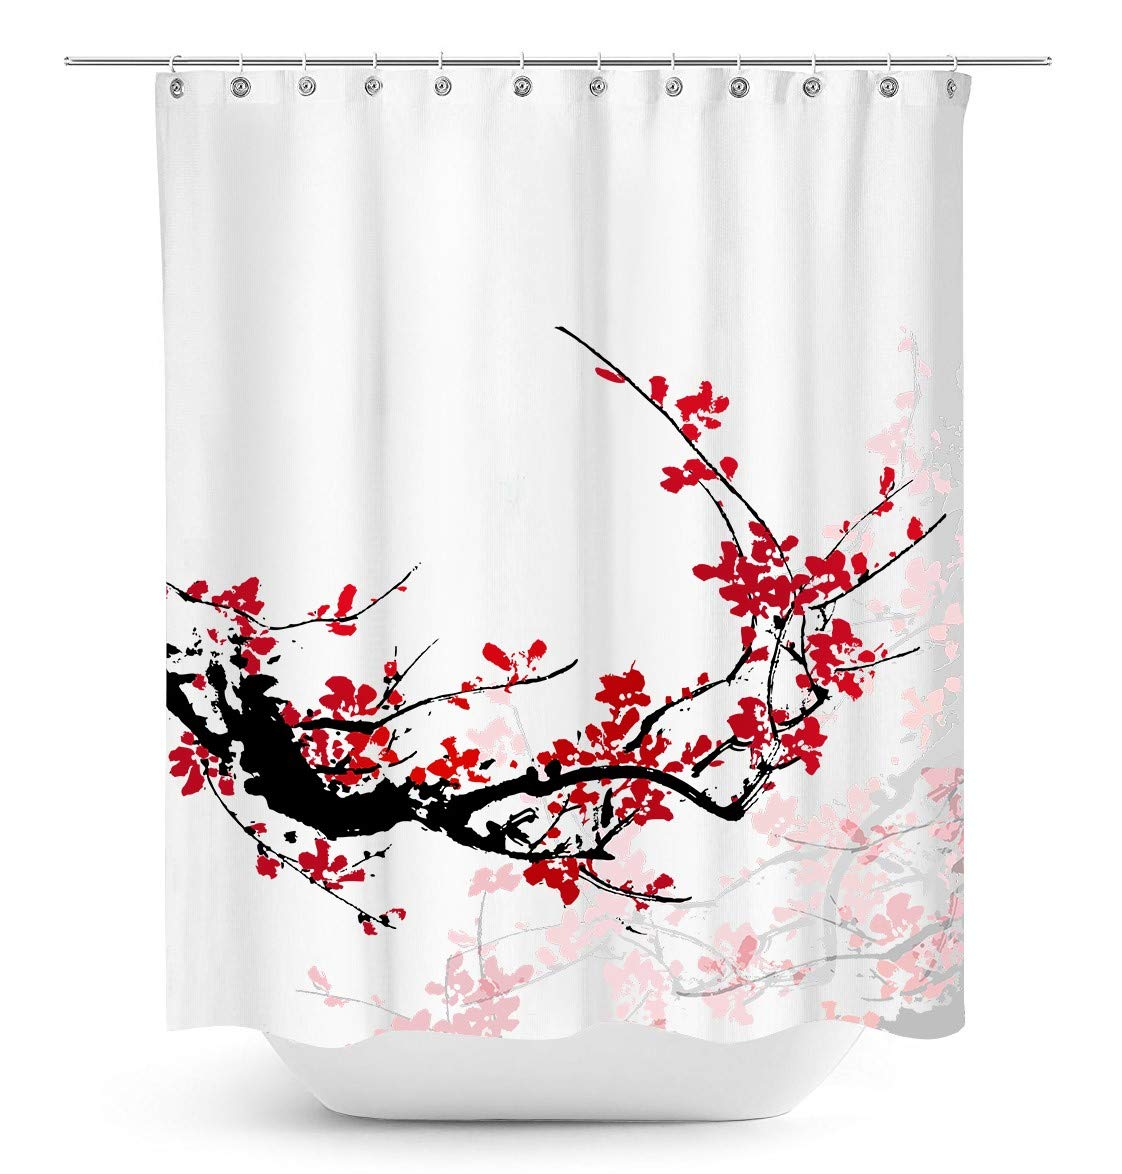 True Holiday Shower Curtain Fabric Polyester Waterproof Mildew Resistant Antibacterial Shower Curtain Liner with 12 Curtain Hooks 180cm*180cm Petal